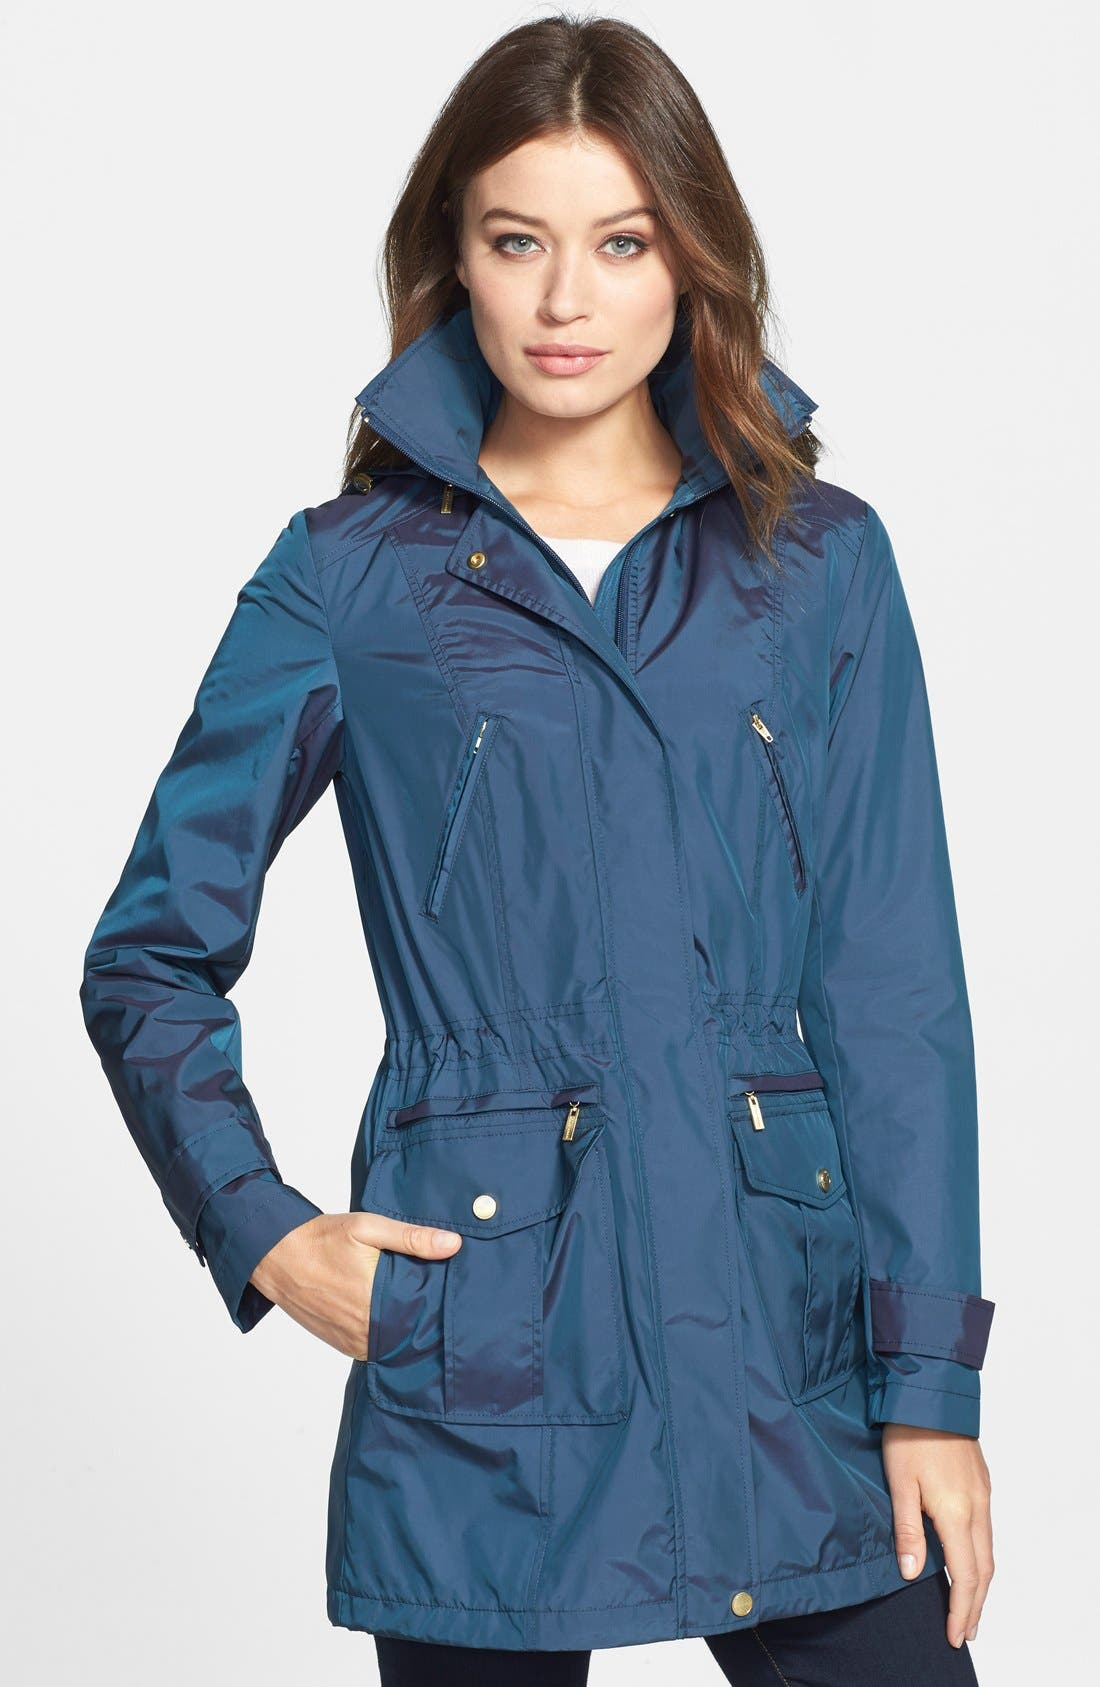 Main Image - Cole Haan Packable Raincoat with Detachable Hood